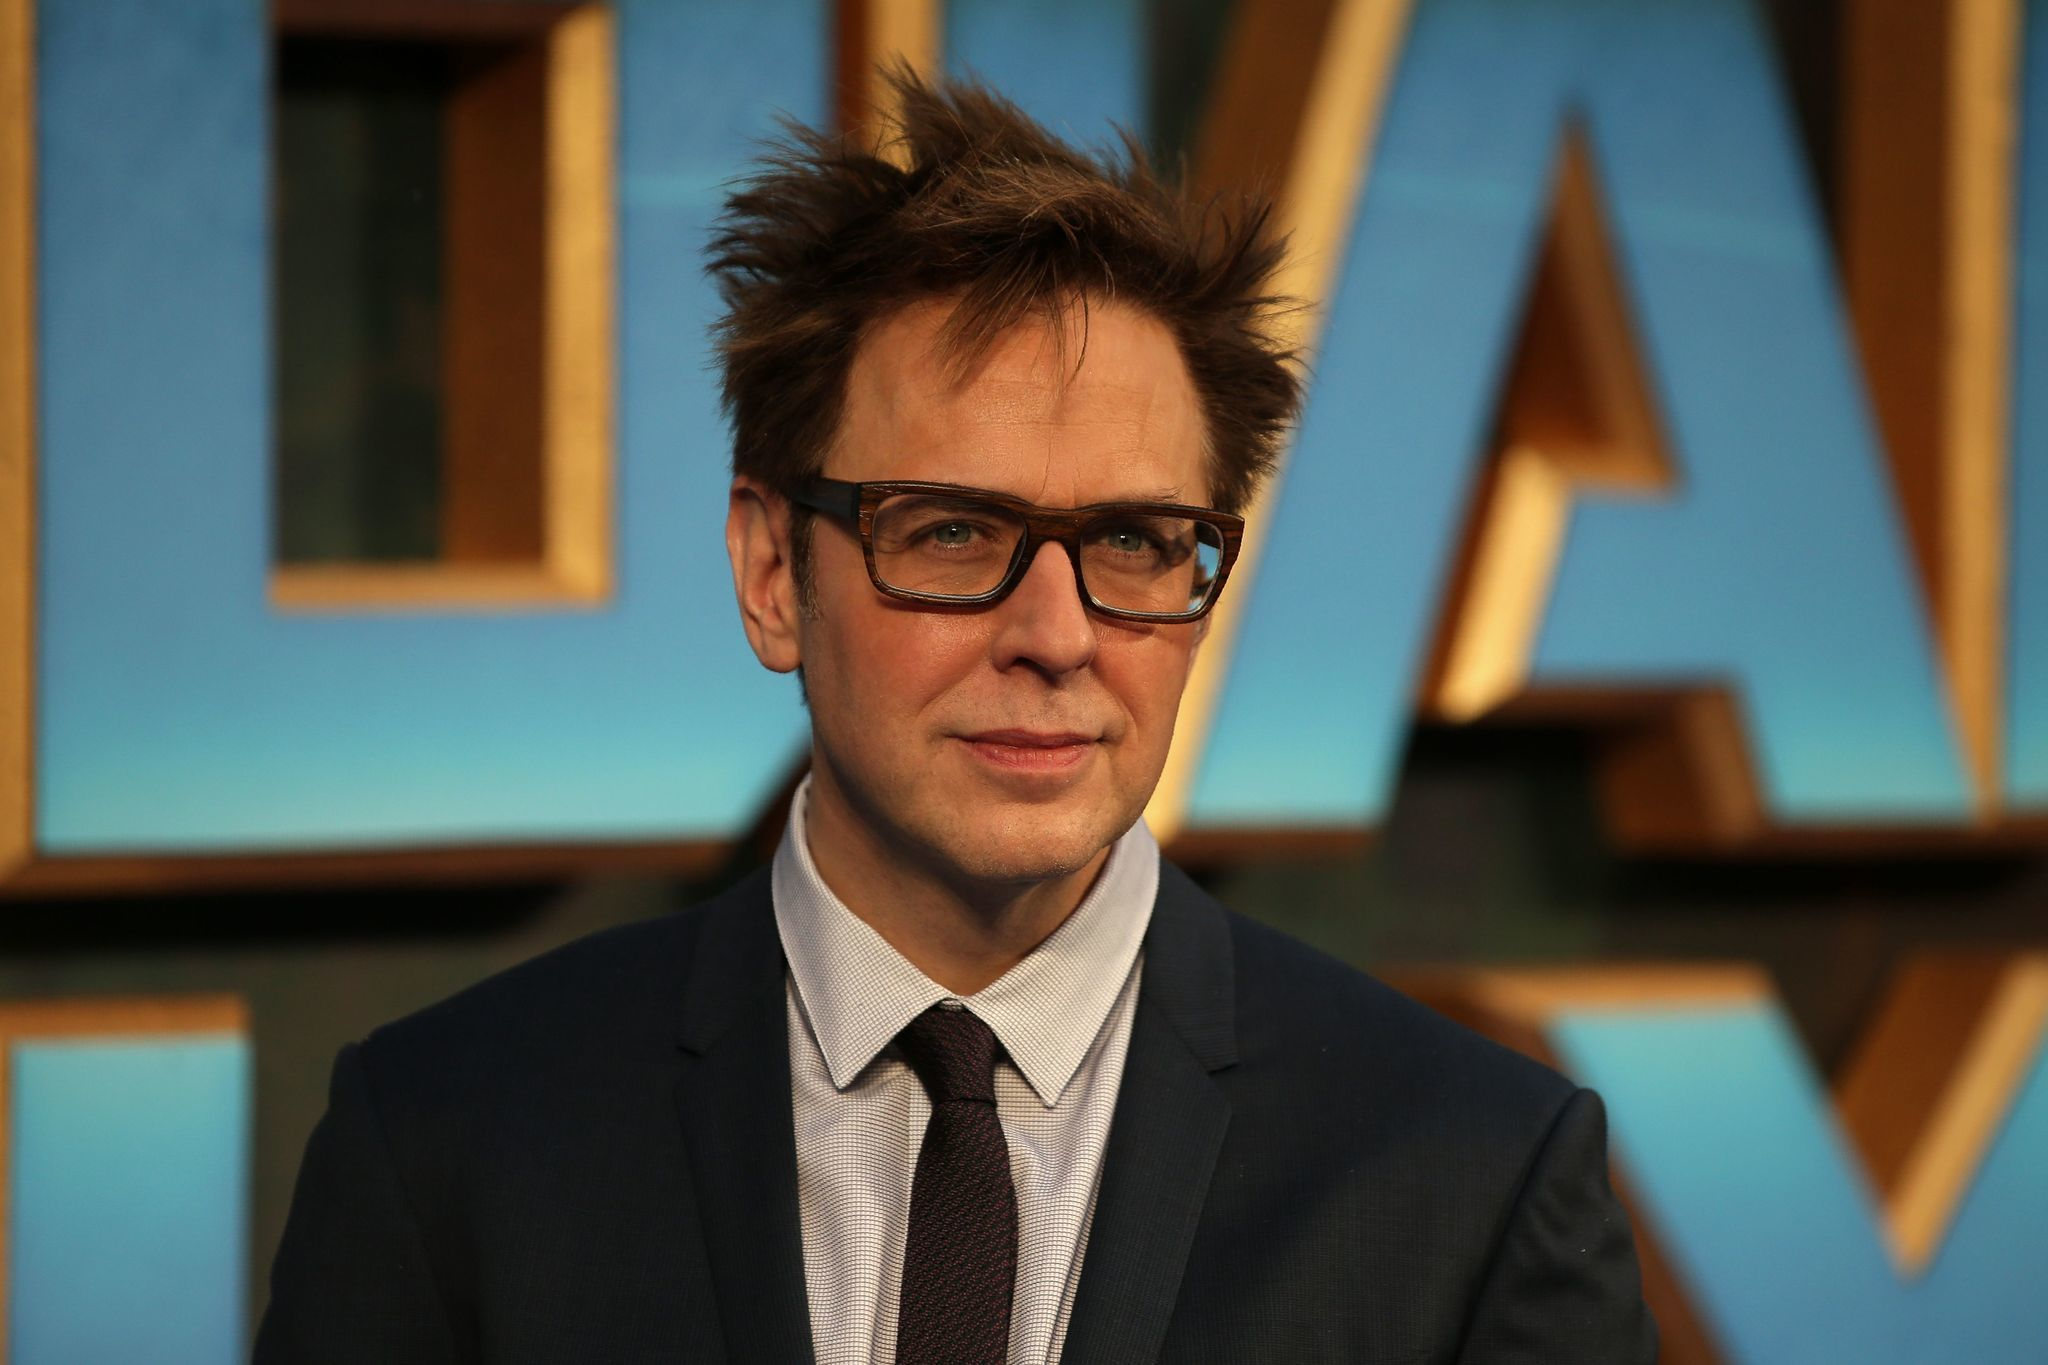 Director James Gunn, above, responded to The Times' investigation of James Toback's alleged sexual misconduct. (Daniel Leal-Olivas / AFP/Getty Images)